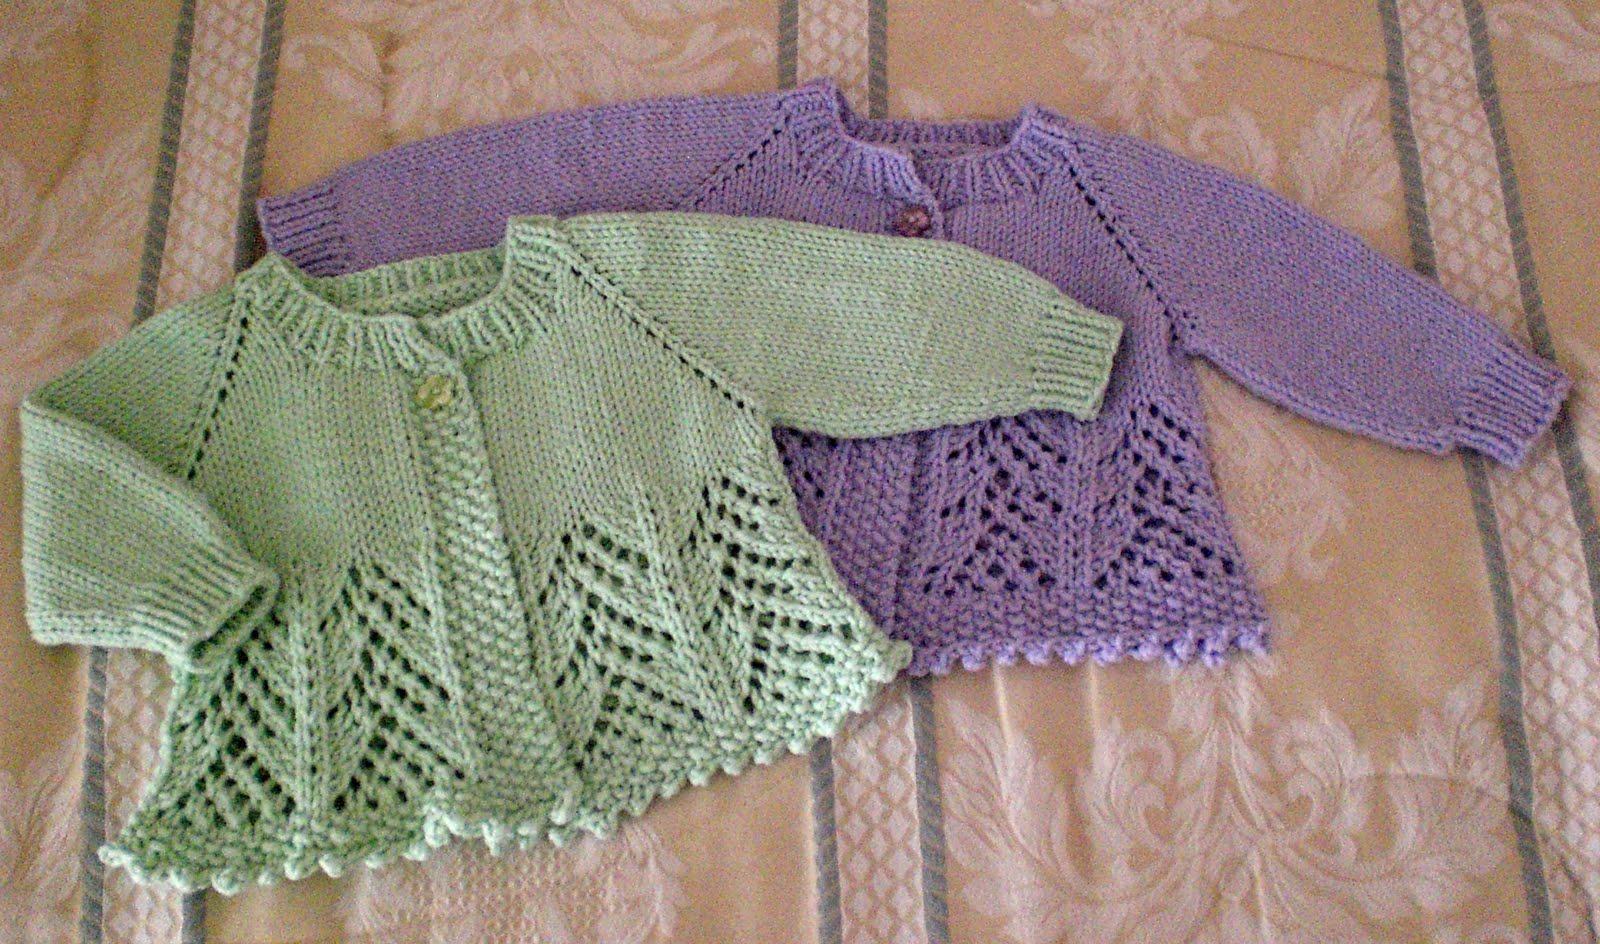 Knitting Patterns Baby Sweaters : Day to Day: FO: more baby sweaters